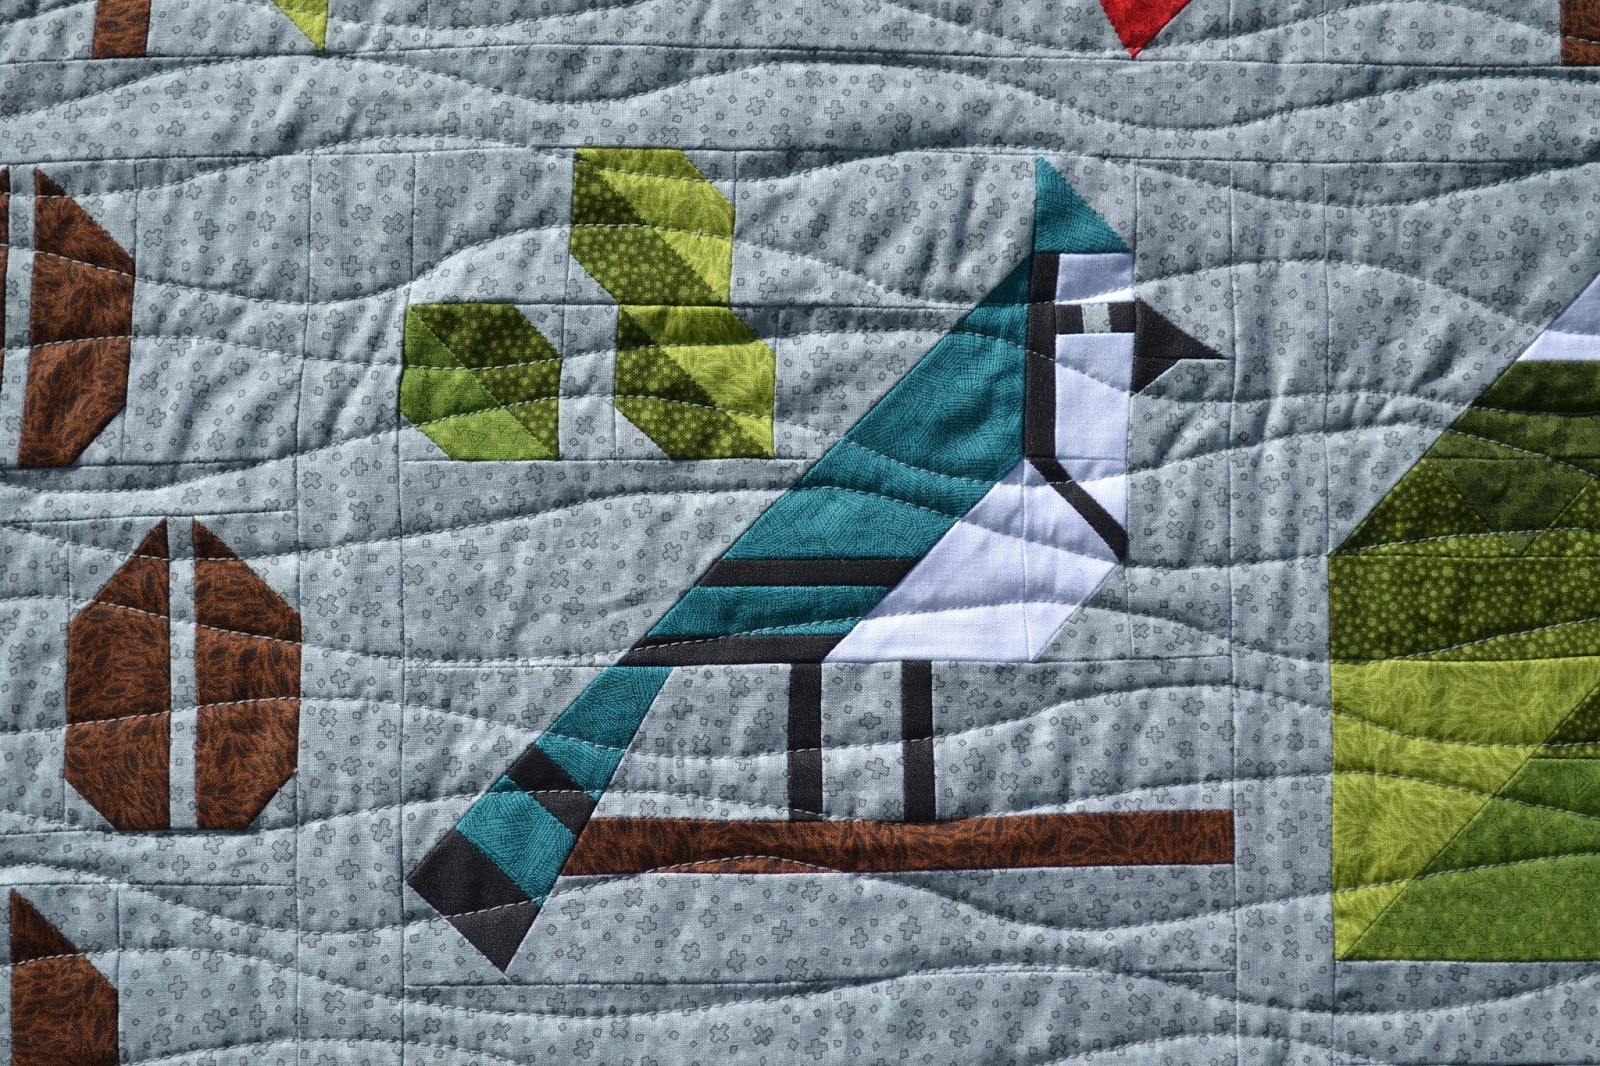 the of two bound or after part but above bereavement memorial is making quilts closeup quilt not rhino upper forest quilting a